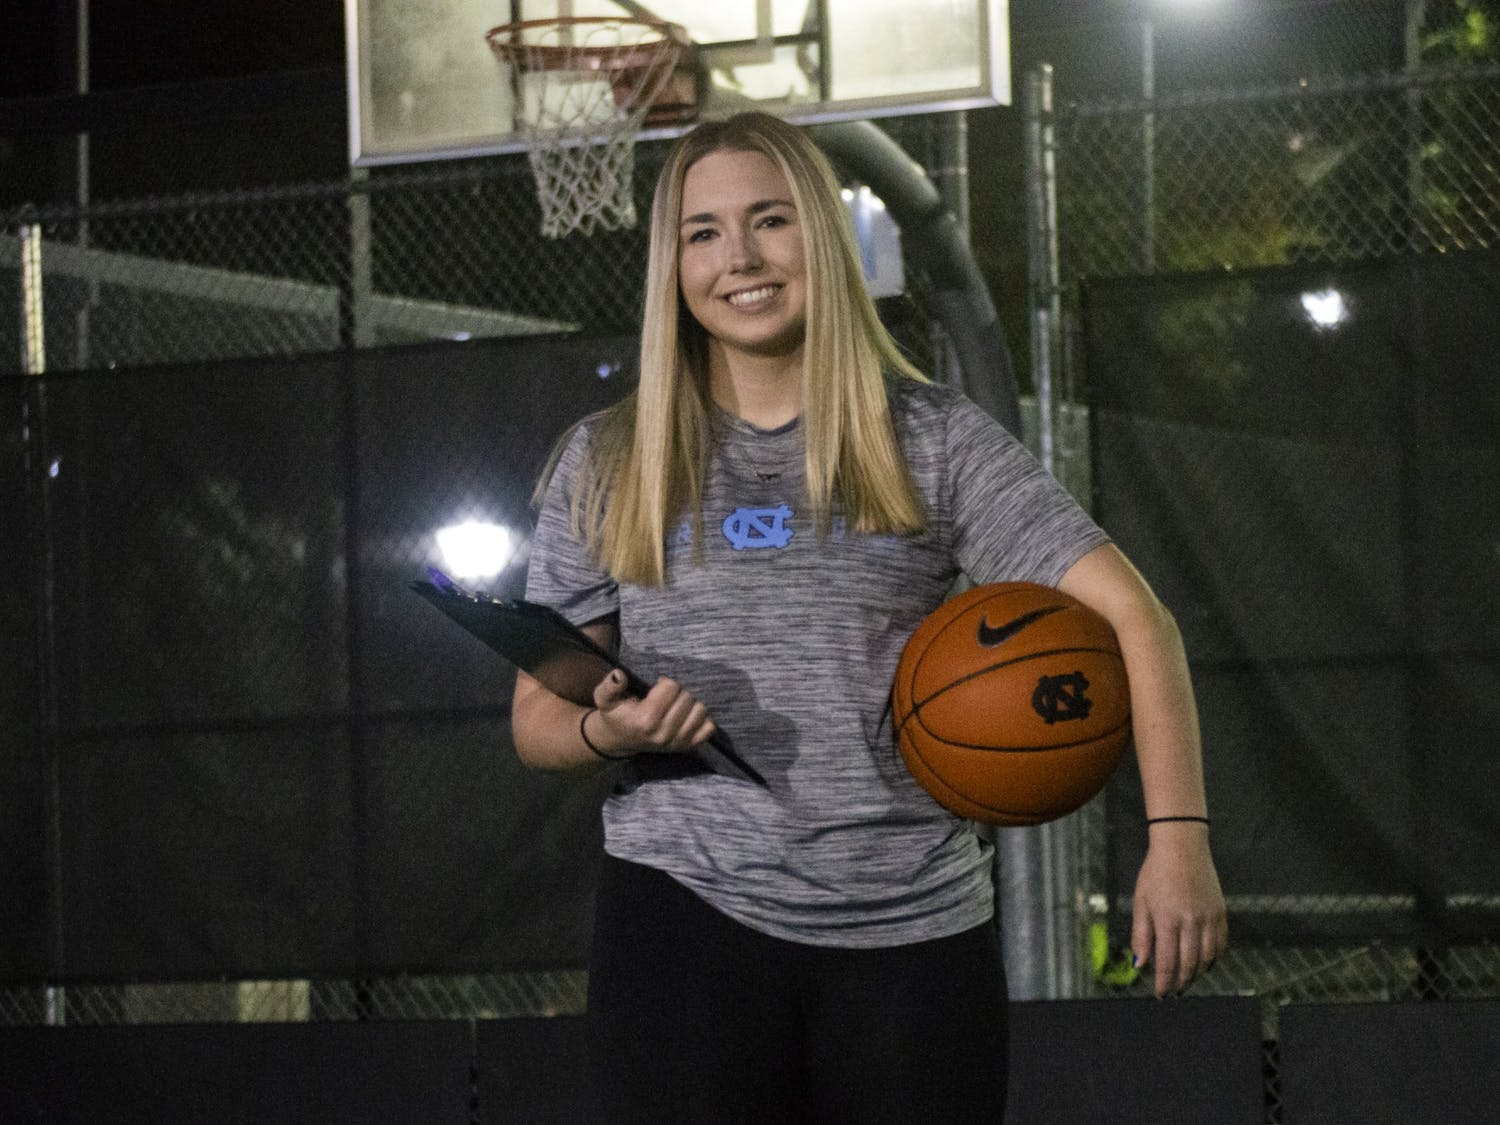 Kiersten Steinbacher, a Senior Exercise and Sport Science Major and Head Student Manager for Carolina Basketball, poses with her basketball and manager clipboard at the courts outside of Ram Village on Monday, Nov. 2, 2020.